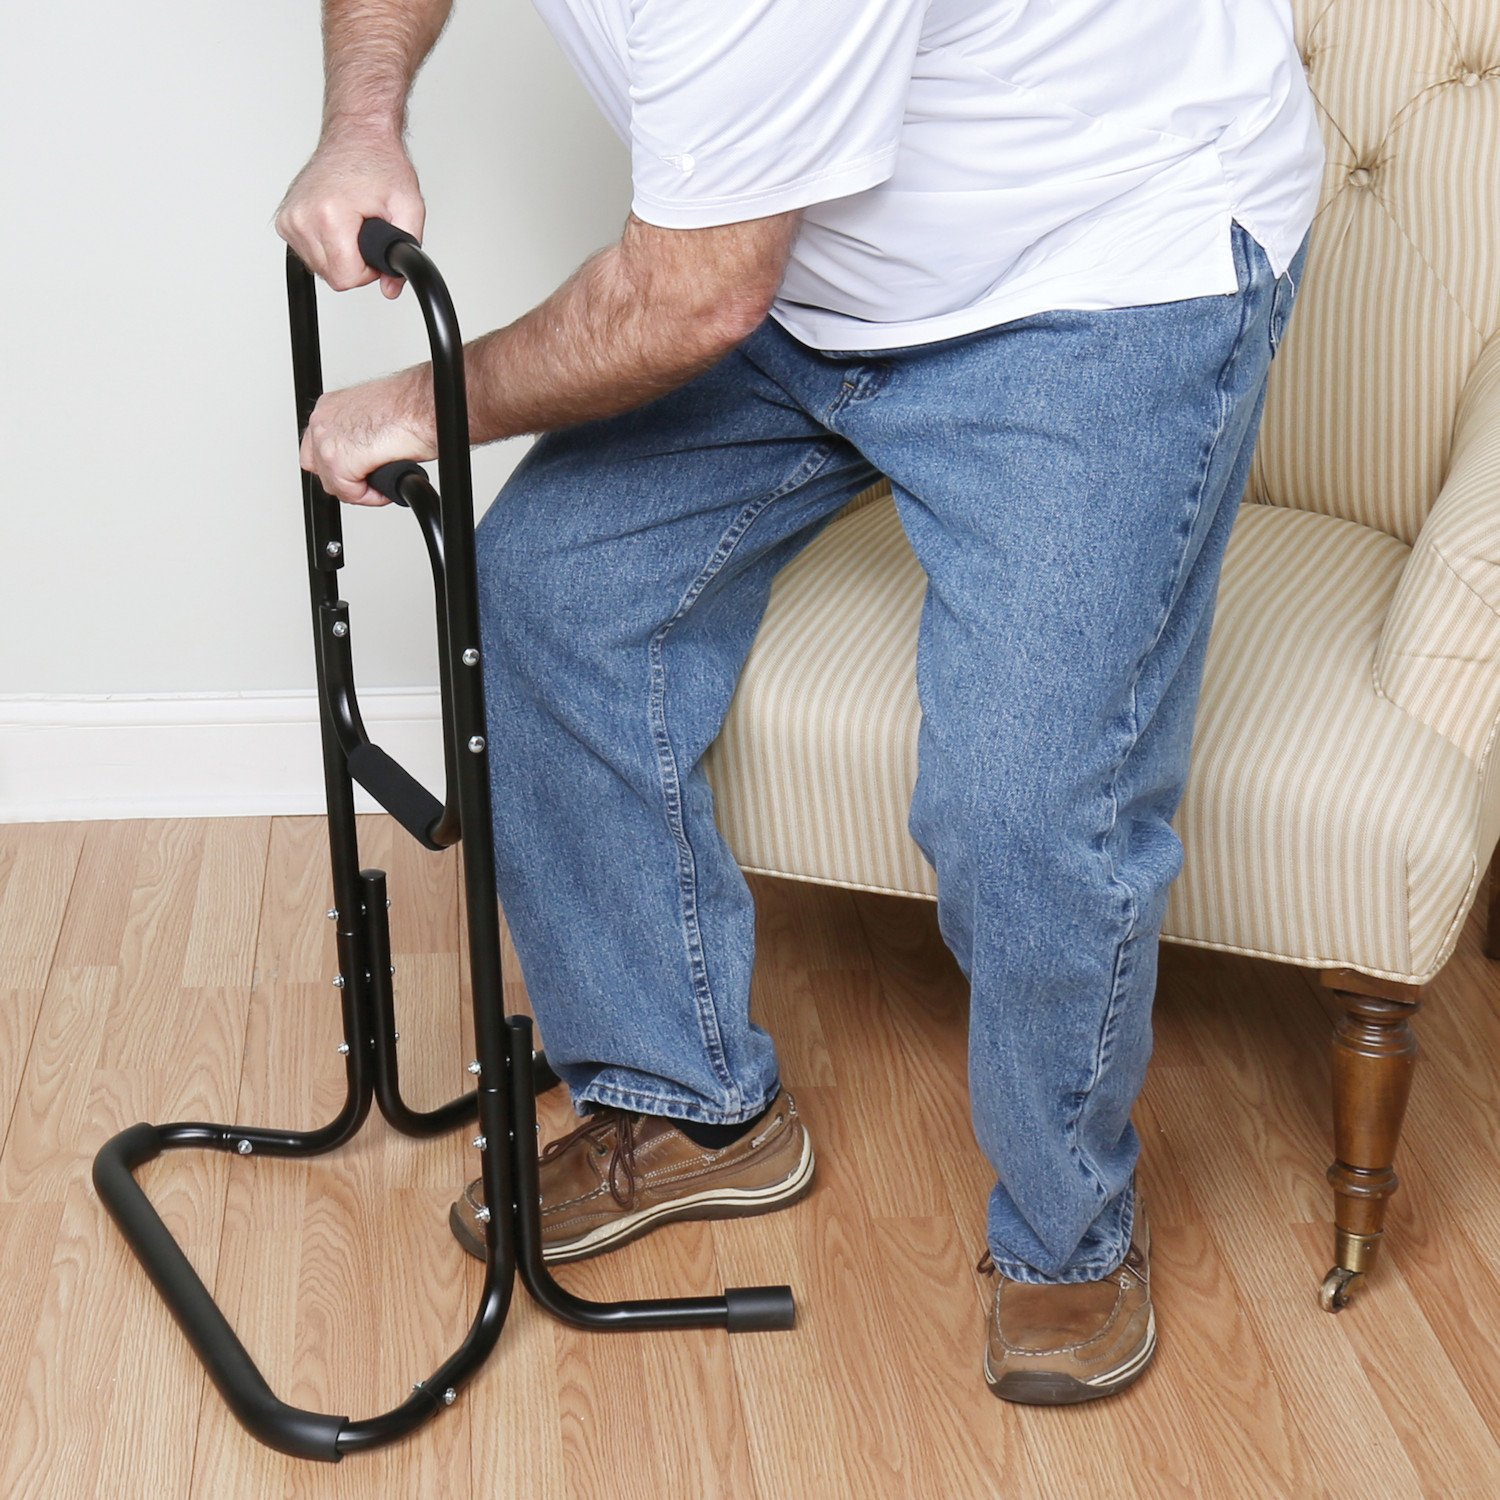 Amazon.com: Portable Chair Assist - Helps Rise from Seated Position ...